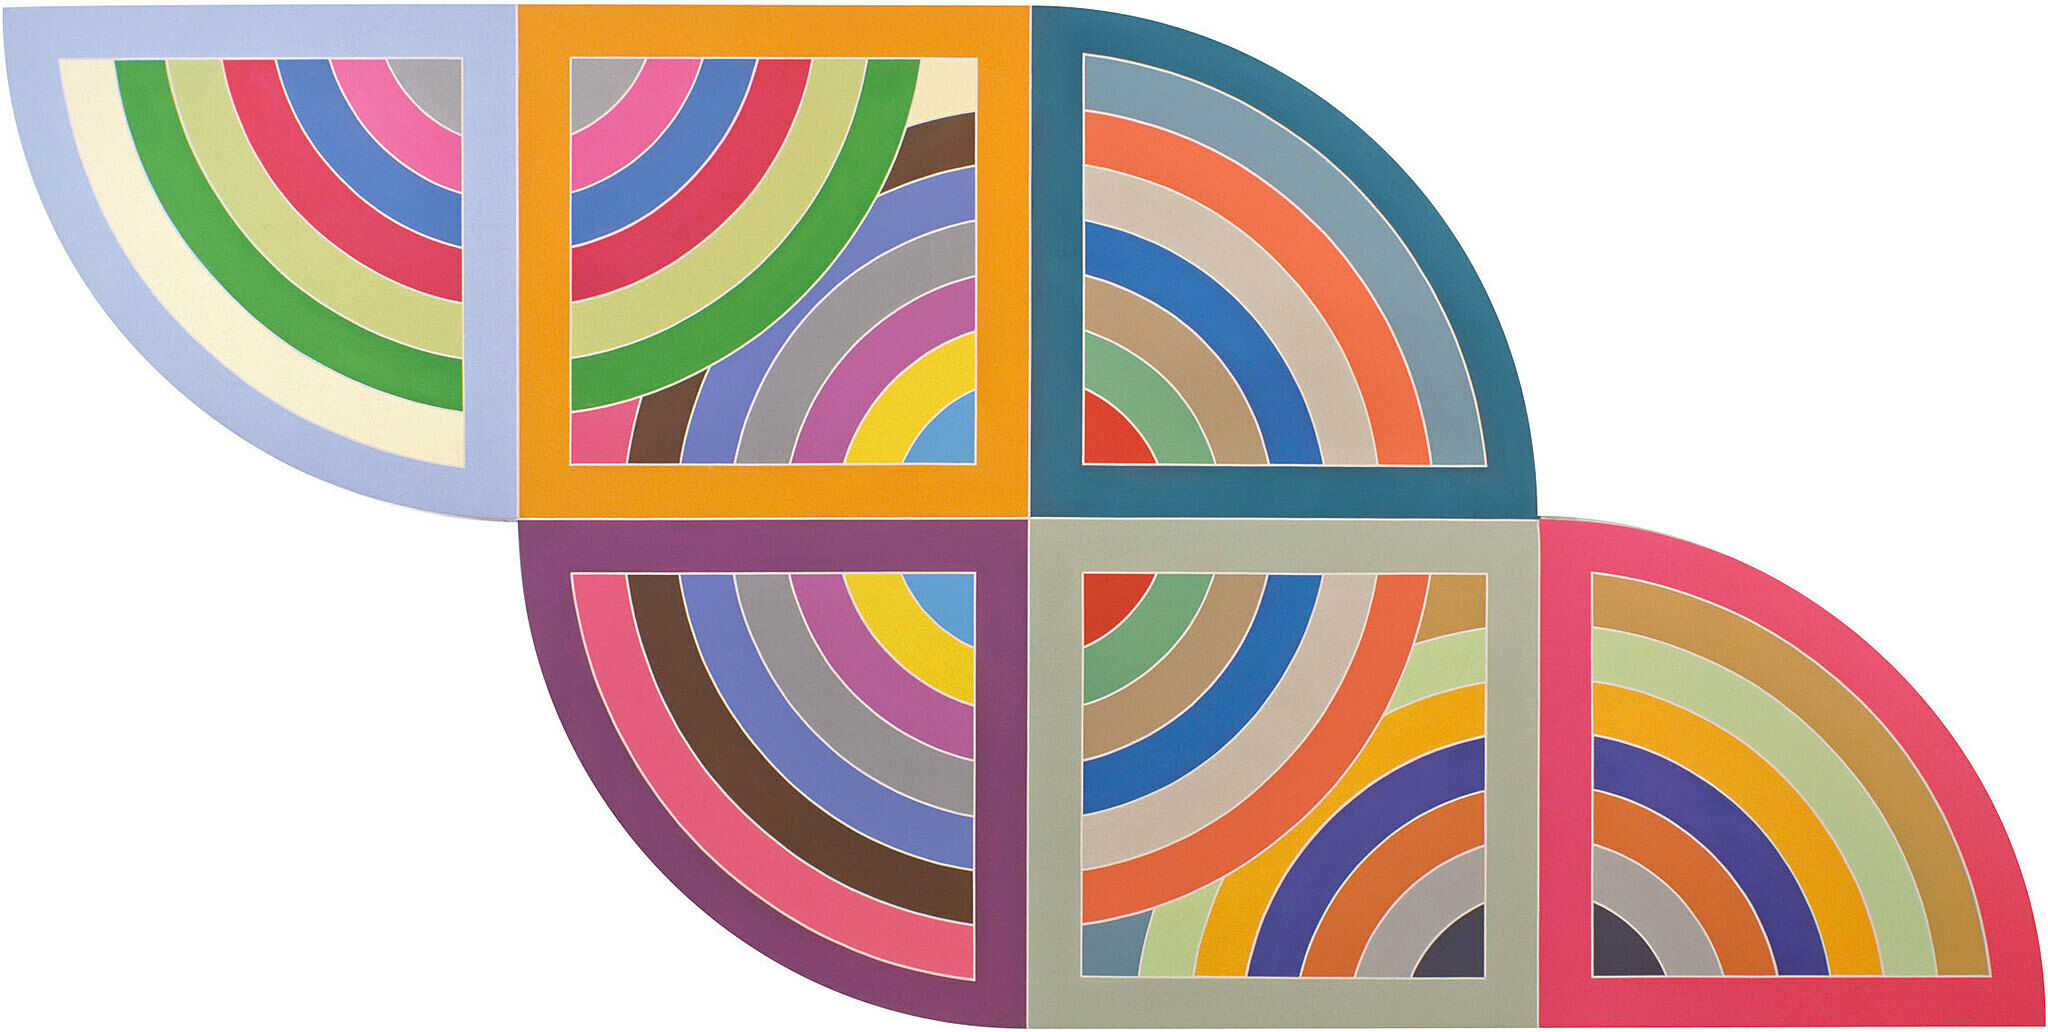 A flat, geometric painting by Frank Stella.